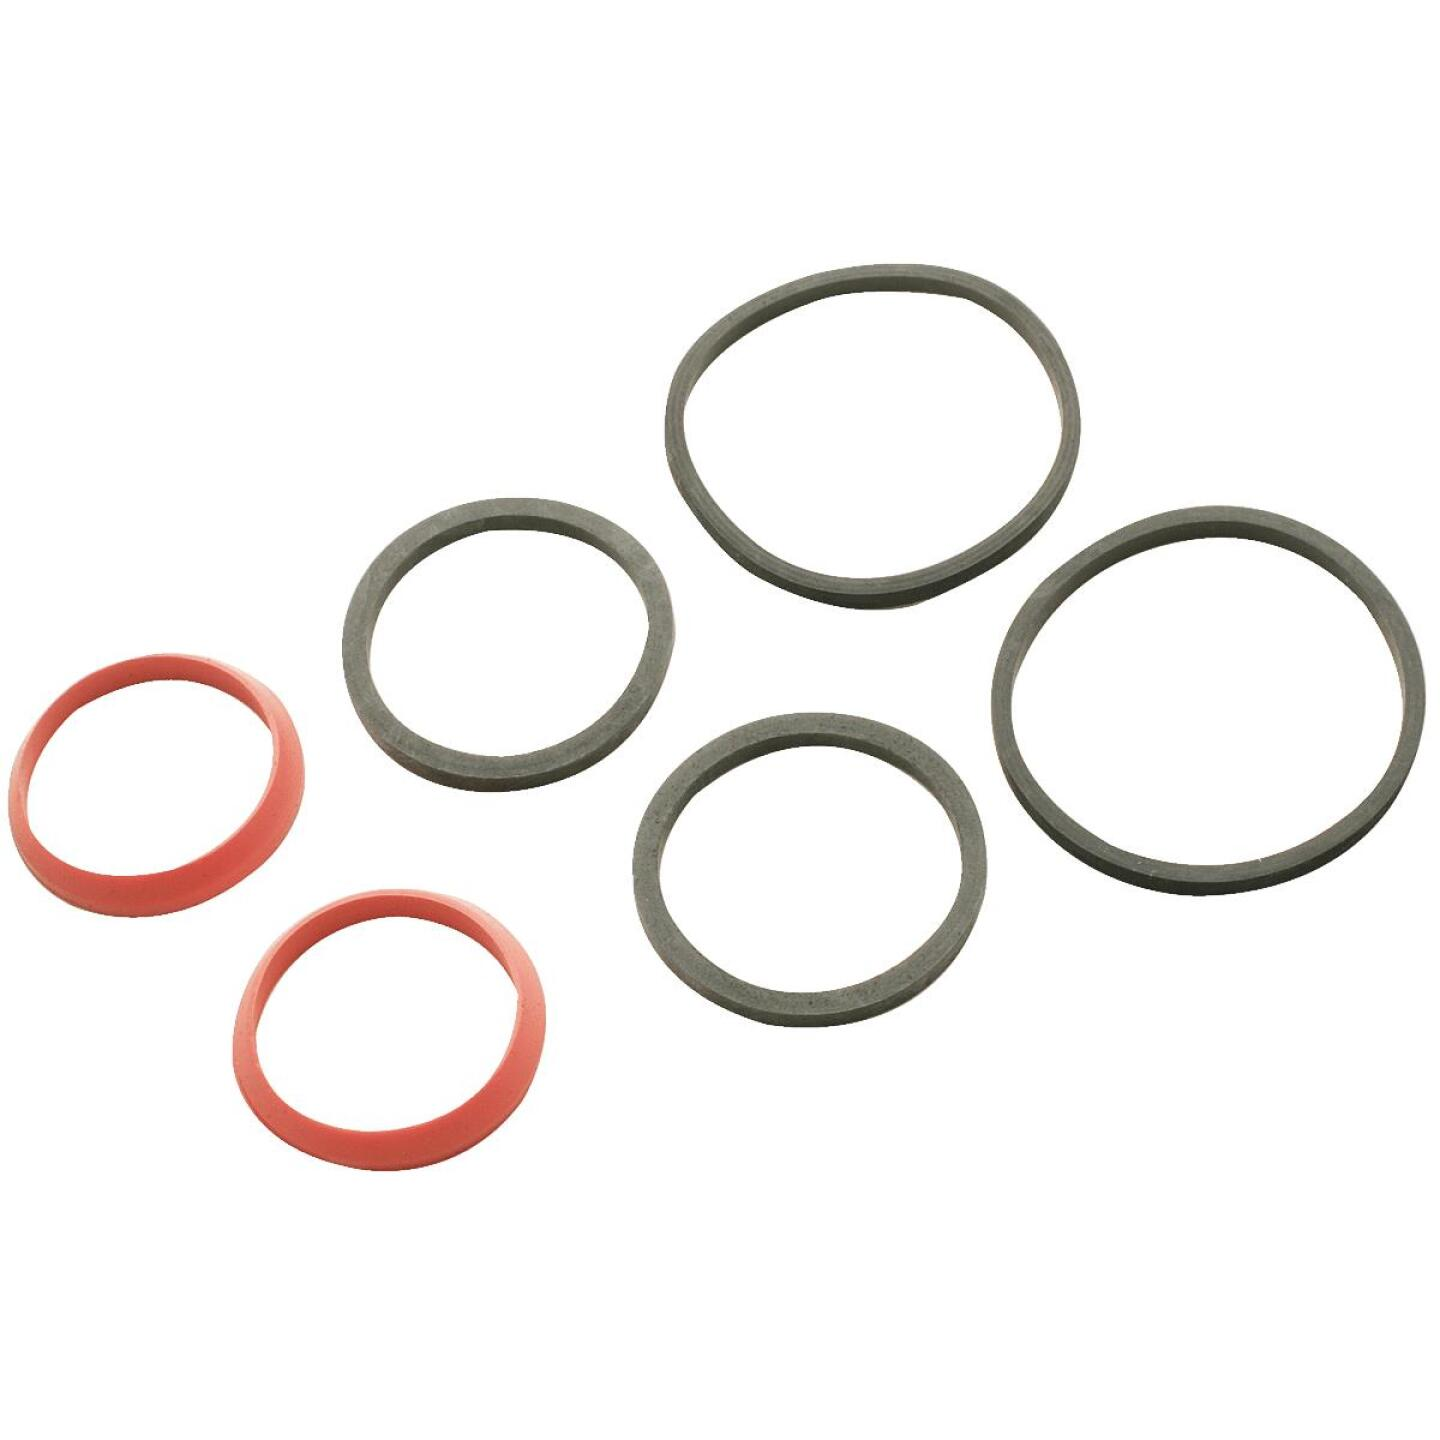 Do it Assorted Rubber Slip Joint Washers (6 Pack) Image 1